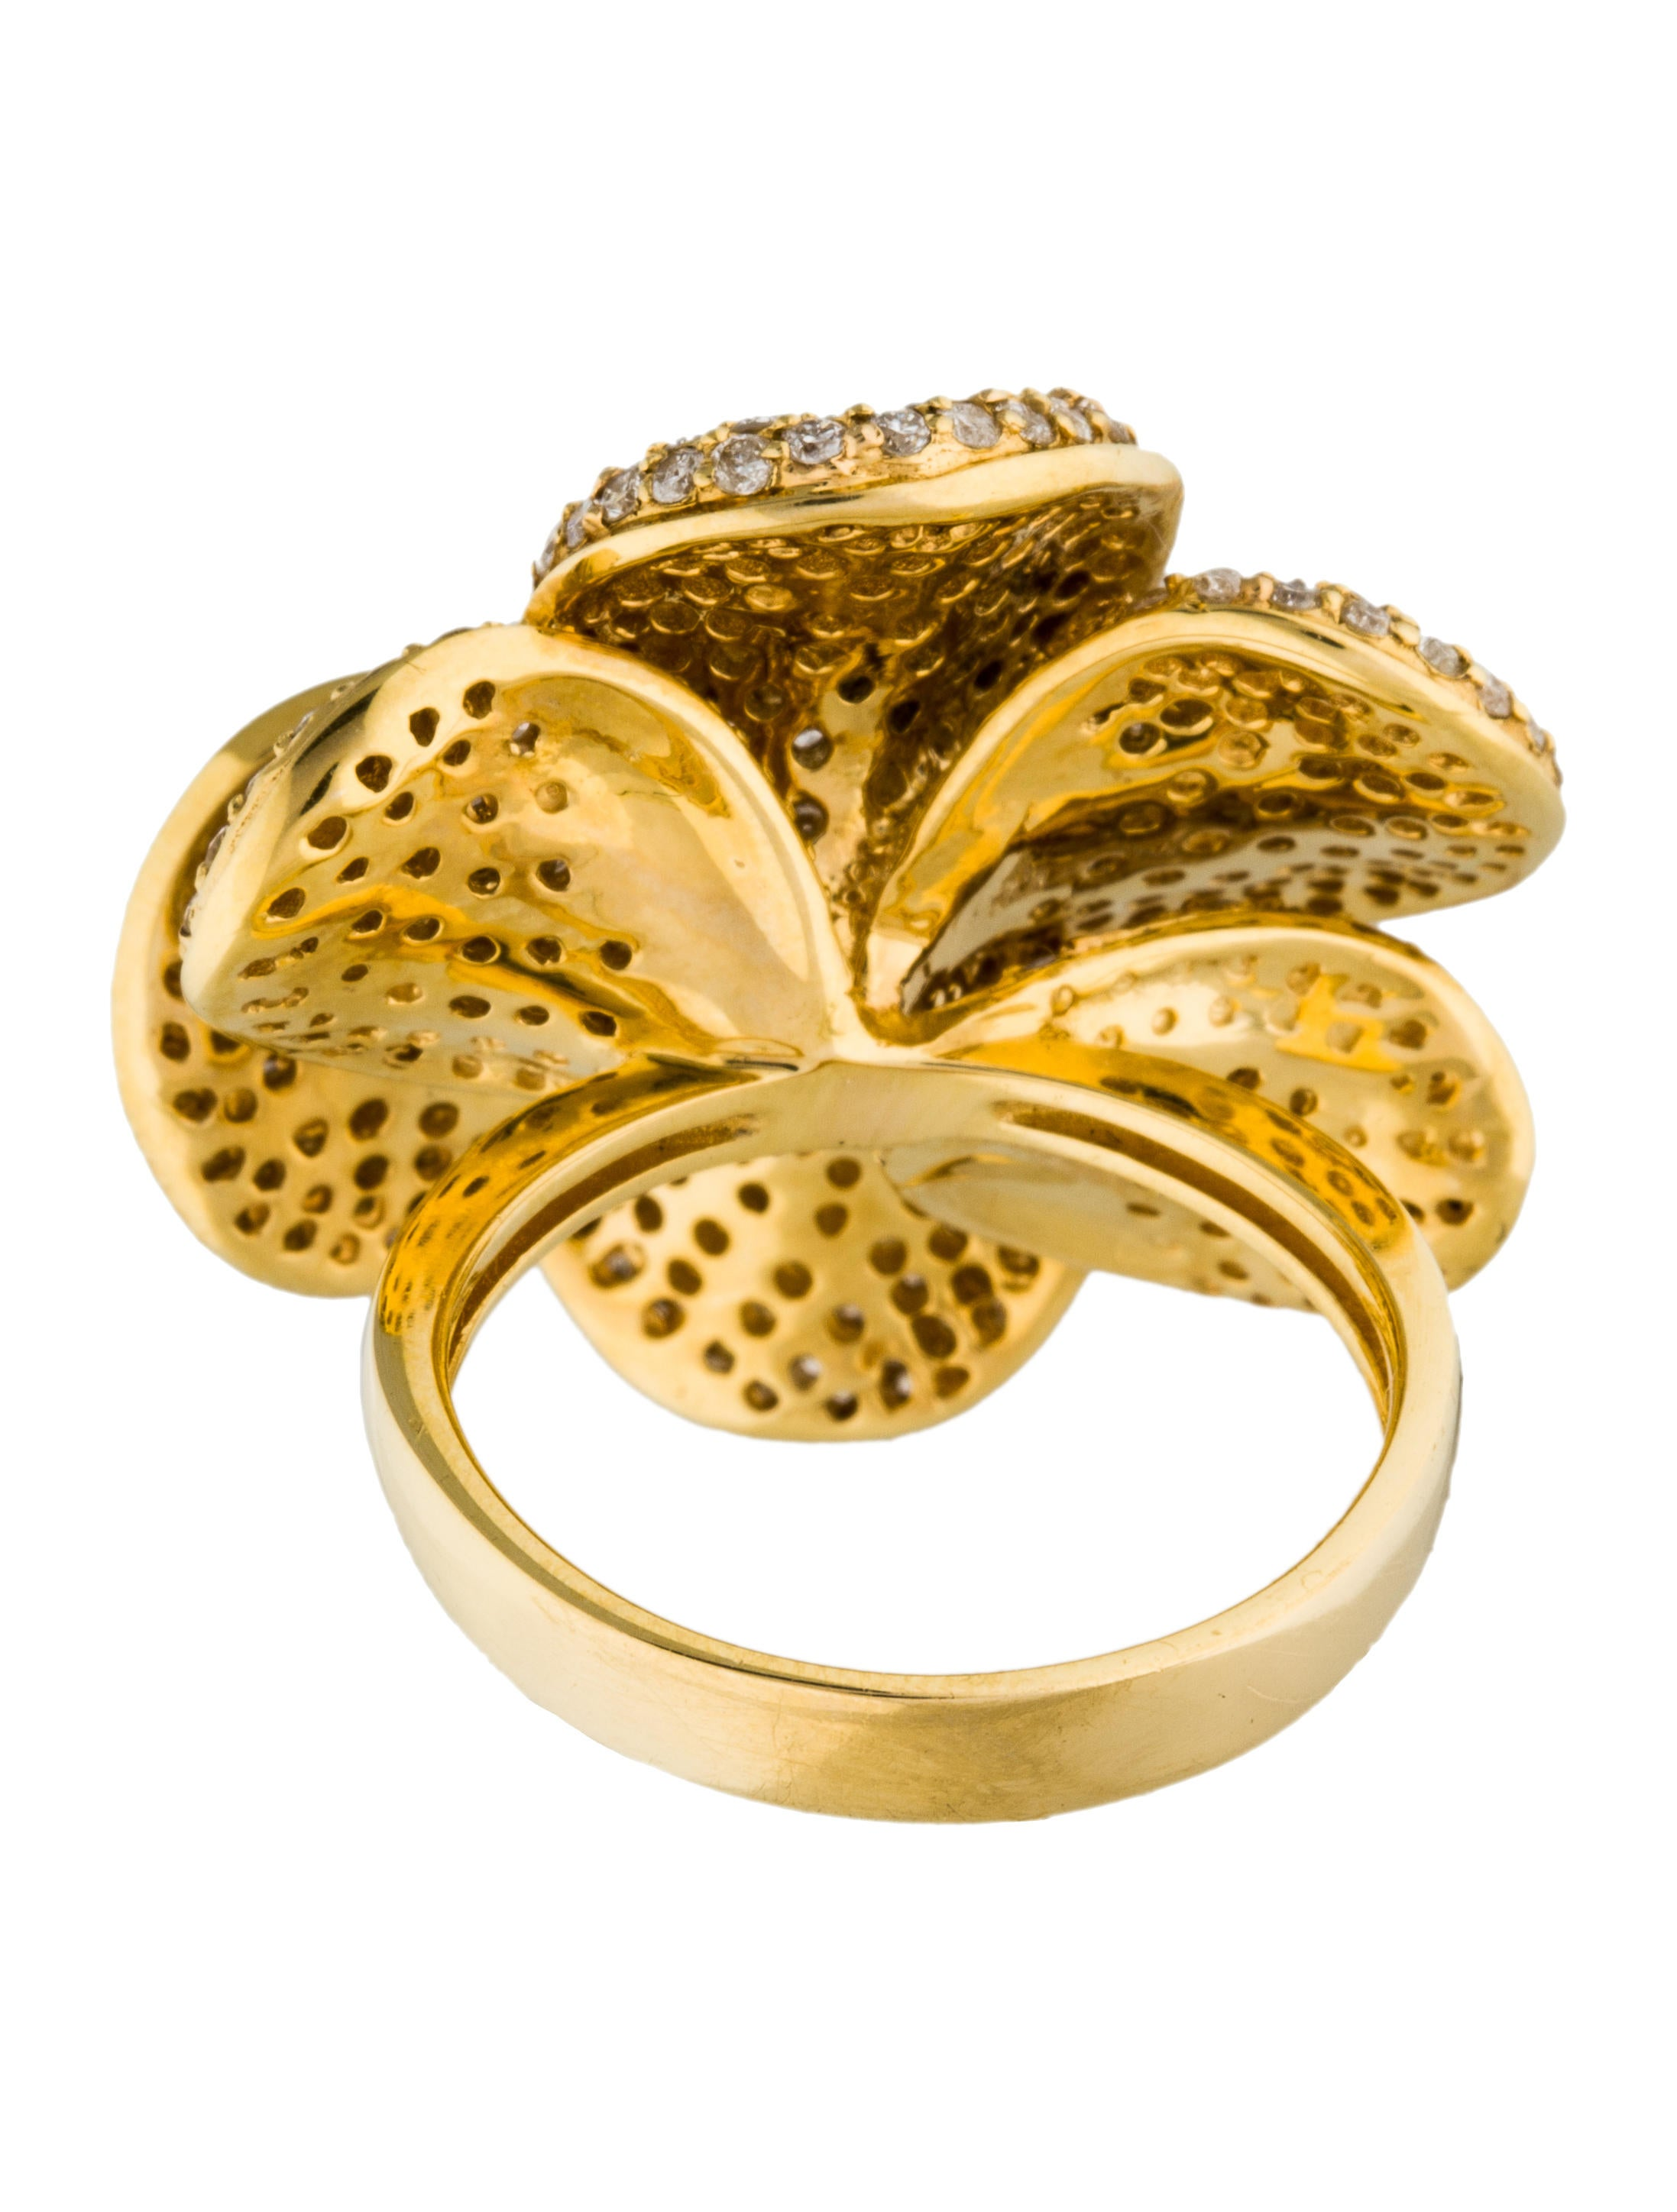 18K Diamond Flower Cocktail Ring Rings RRING